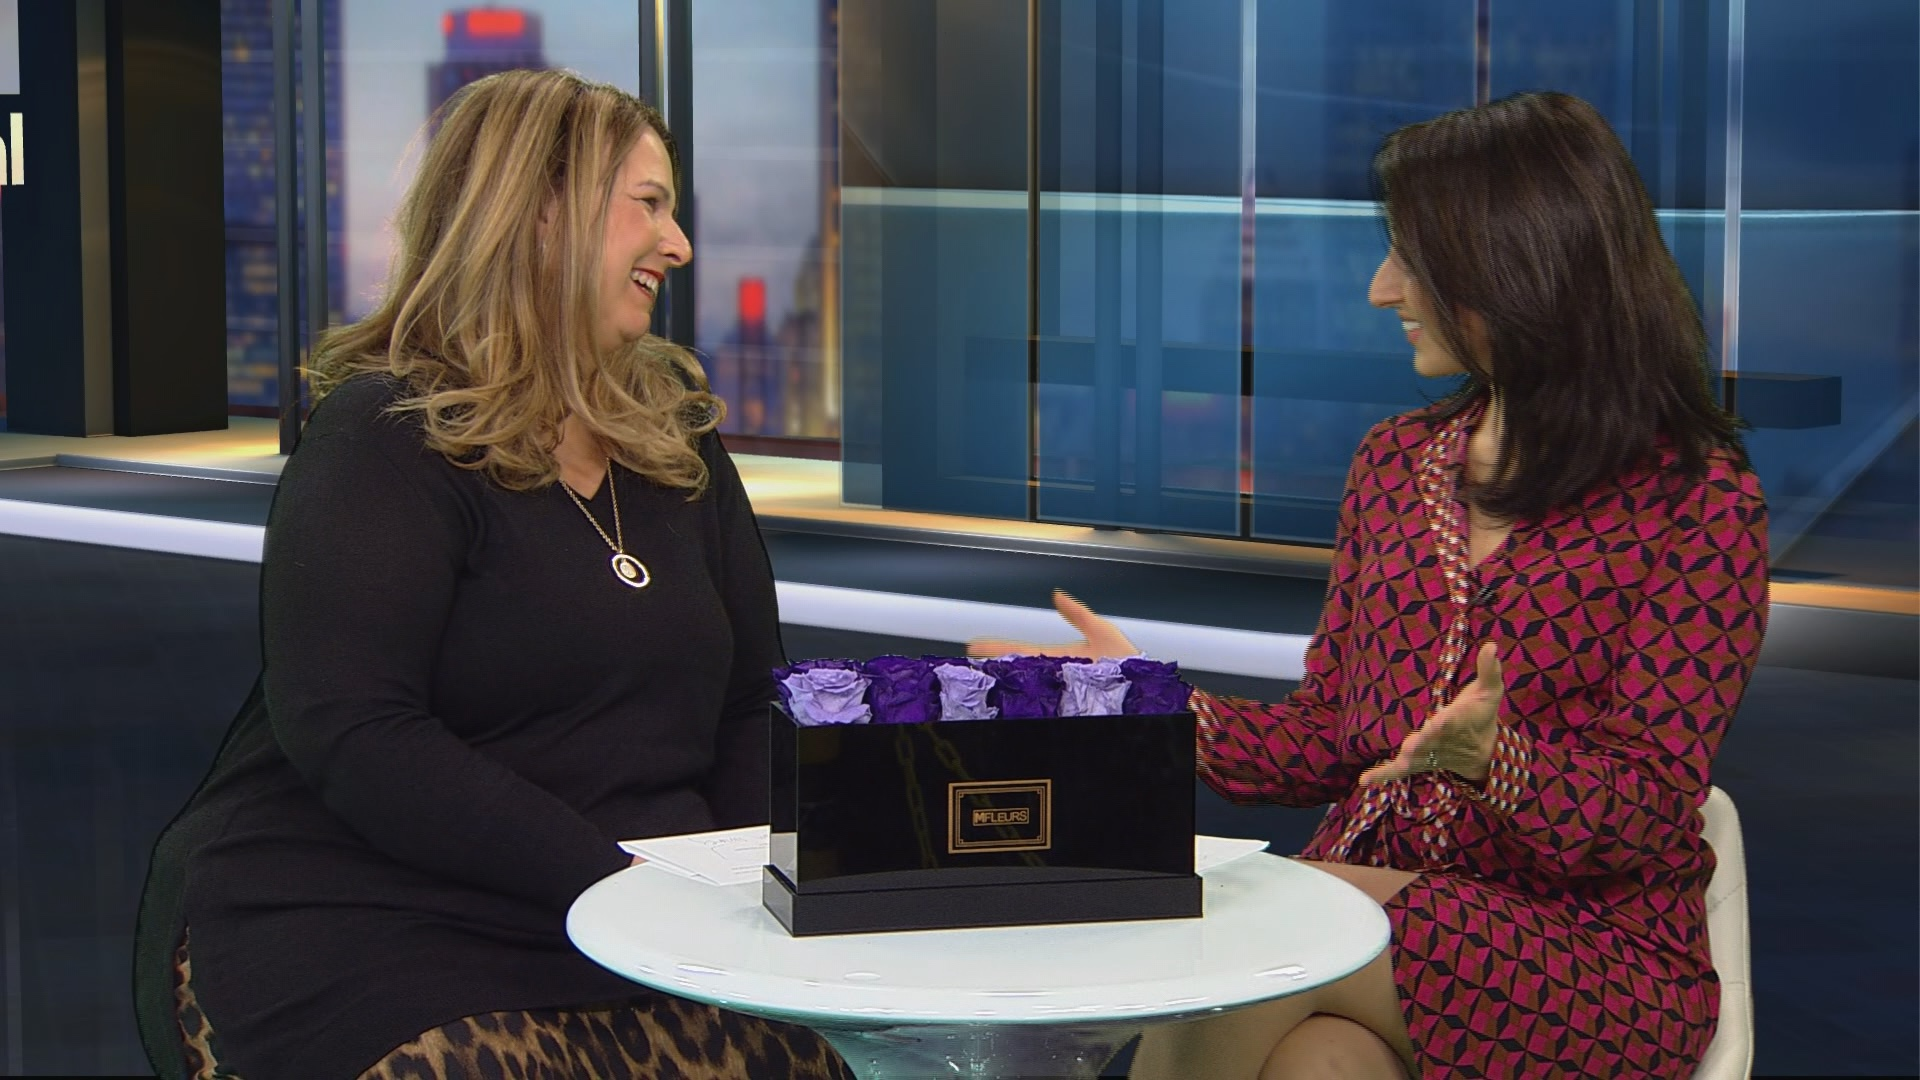 Sherri is talking with Laura Casella of Global News Morning keeping employees engaged